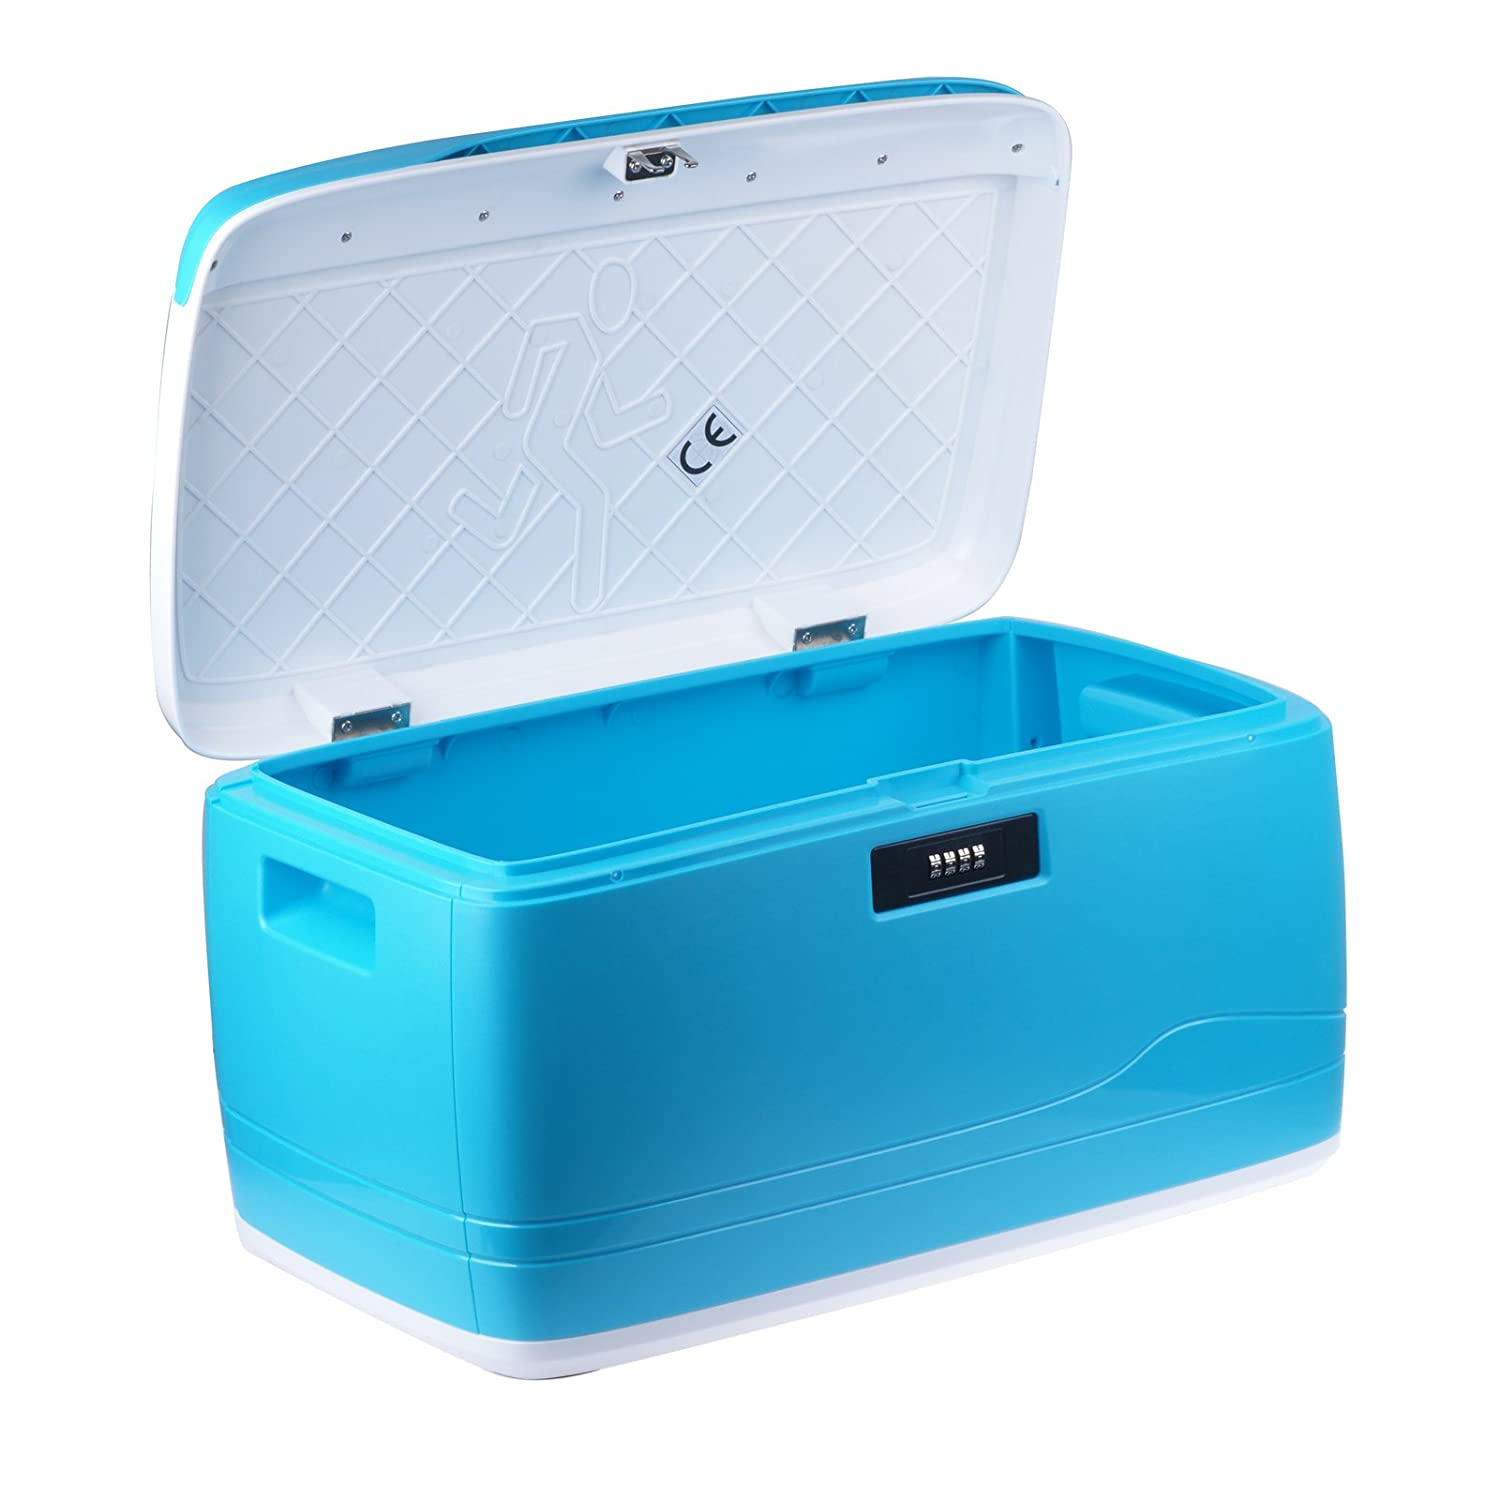 Vinteky ABS+304 stainless steel Storage Box can be widely used in home, upscale clubs, school, hospital, institute, car and fashionable DIY home life Museum etc. - 32L - 46x28x24.5cm (Blue)